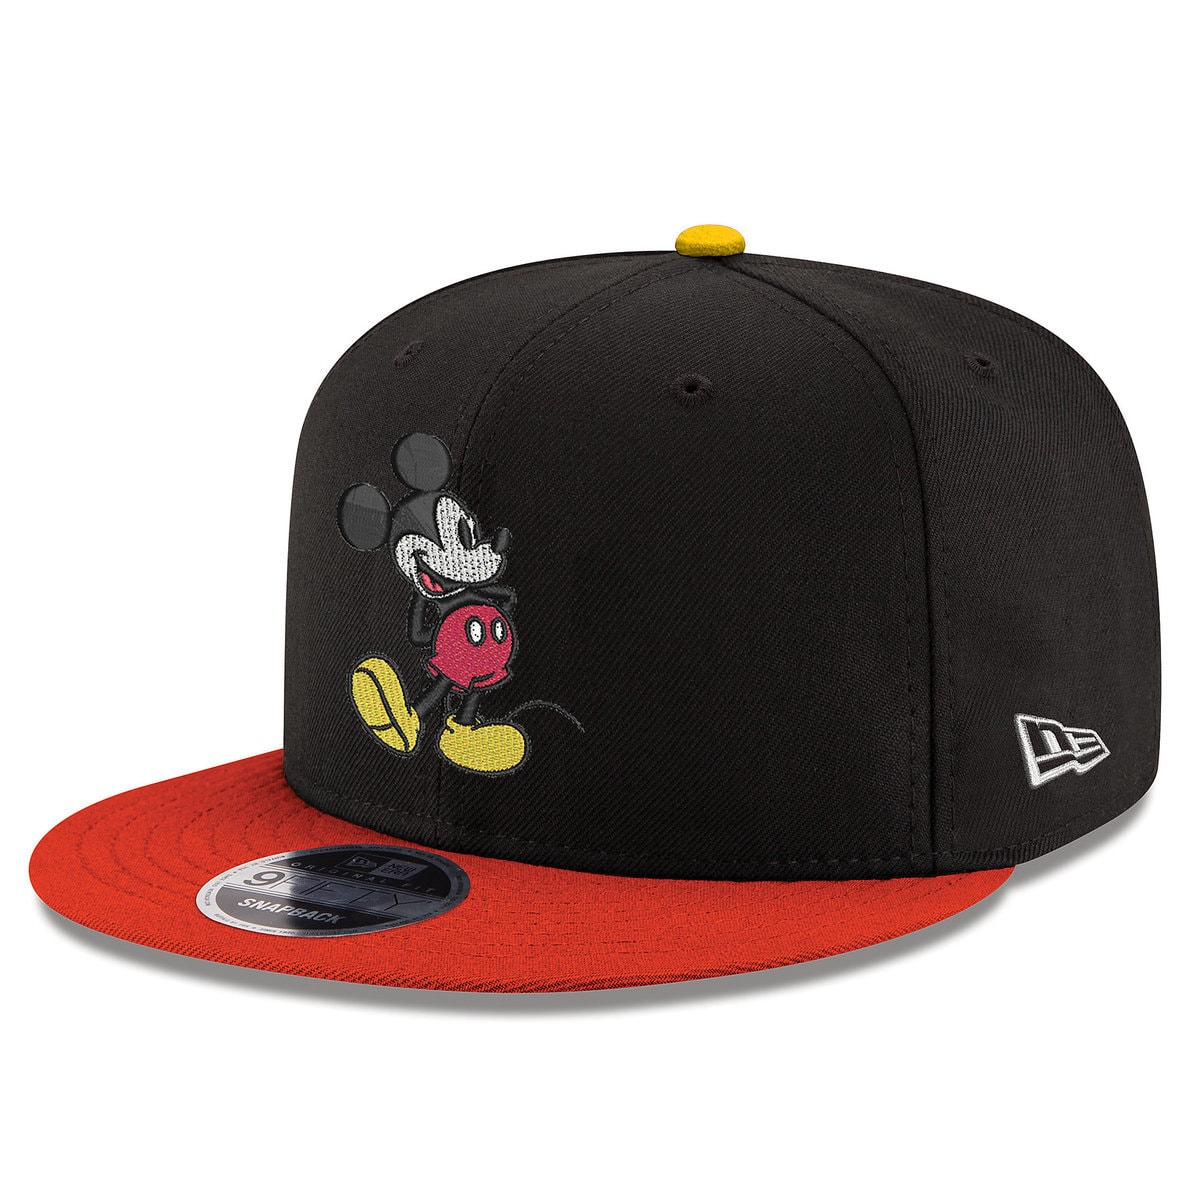 detailed look 7492e 94862 Product Image of Mickey Mouse Signature Snapback Hat - New Era - Adults   1